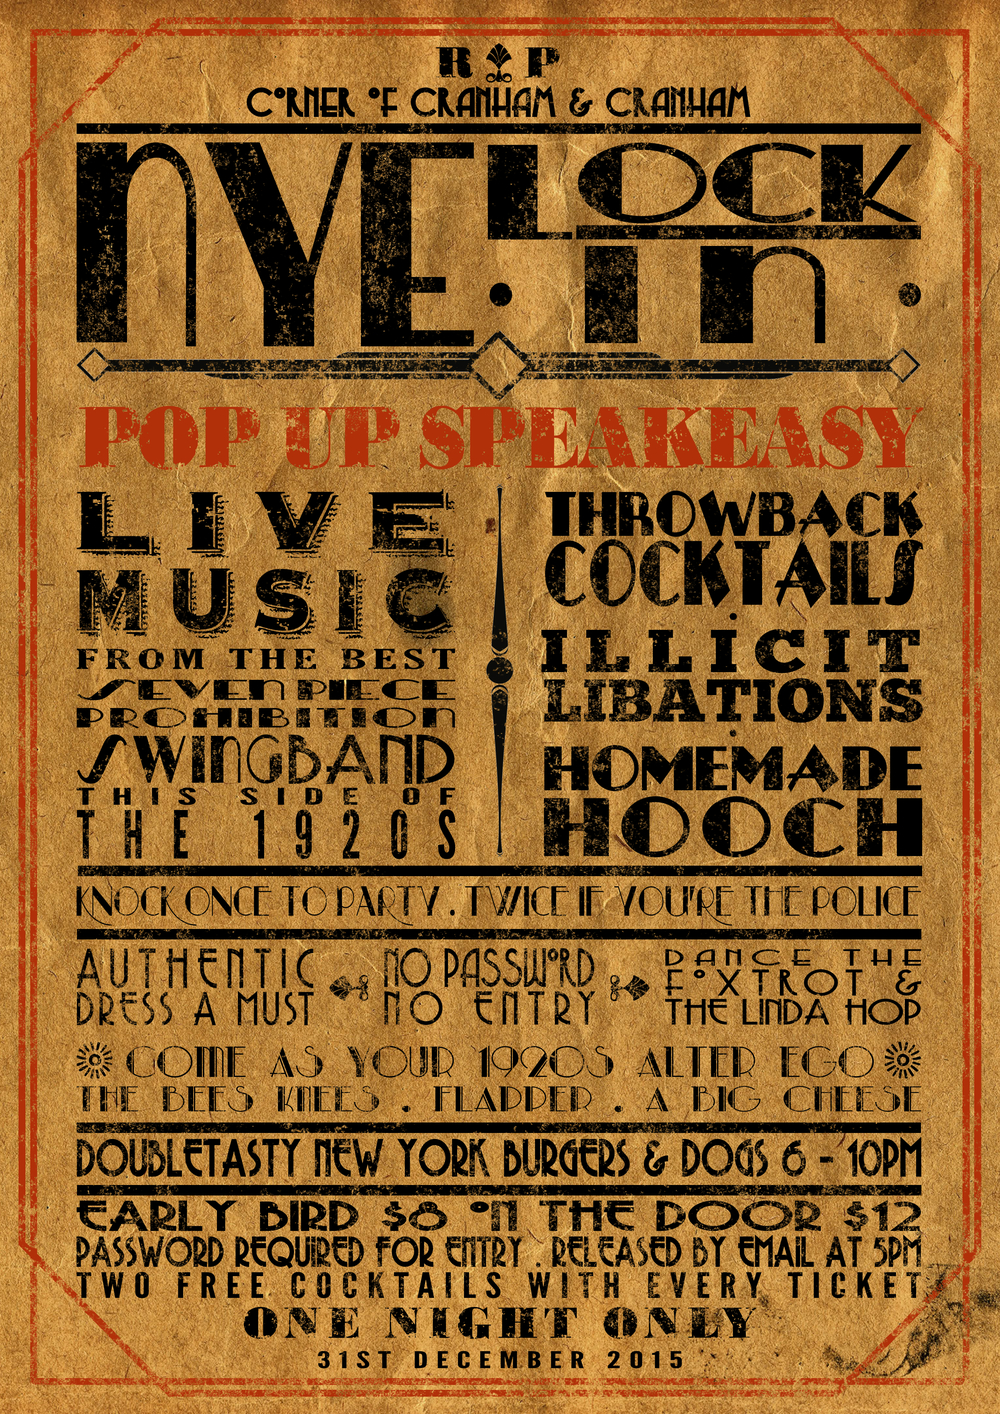 new years eve pop up speakeasy tickets on now the rickety new years eve pop up speakeasy tickets on now the rickety press